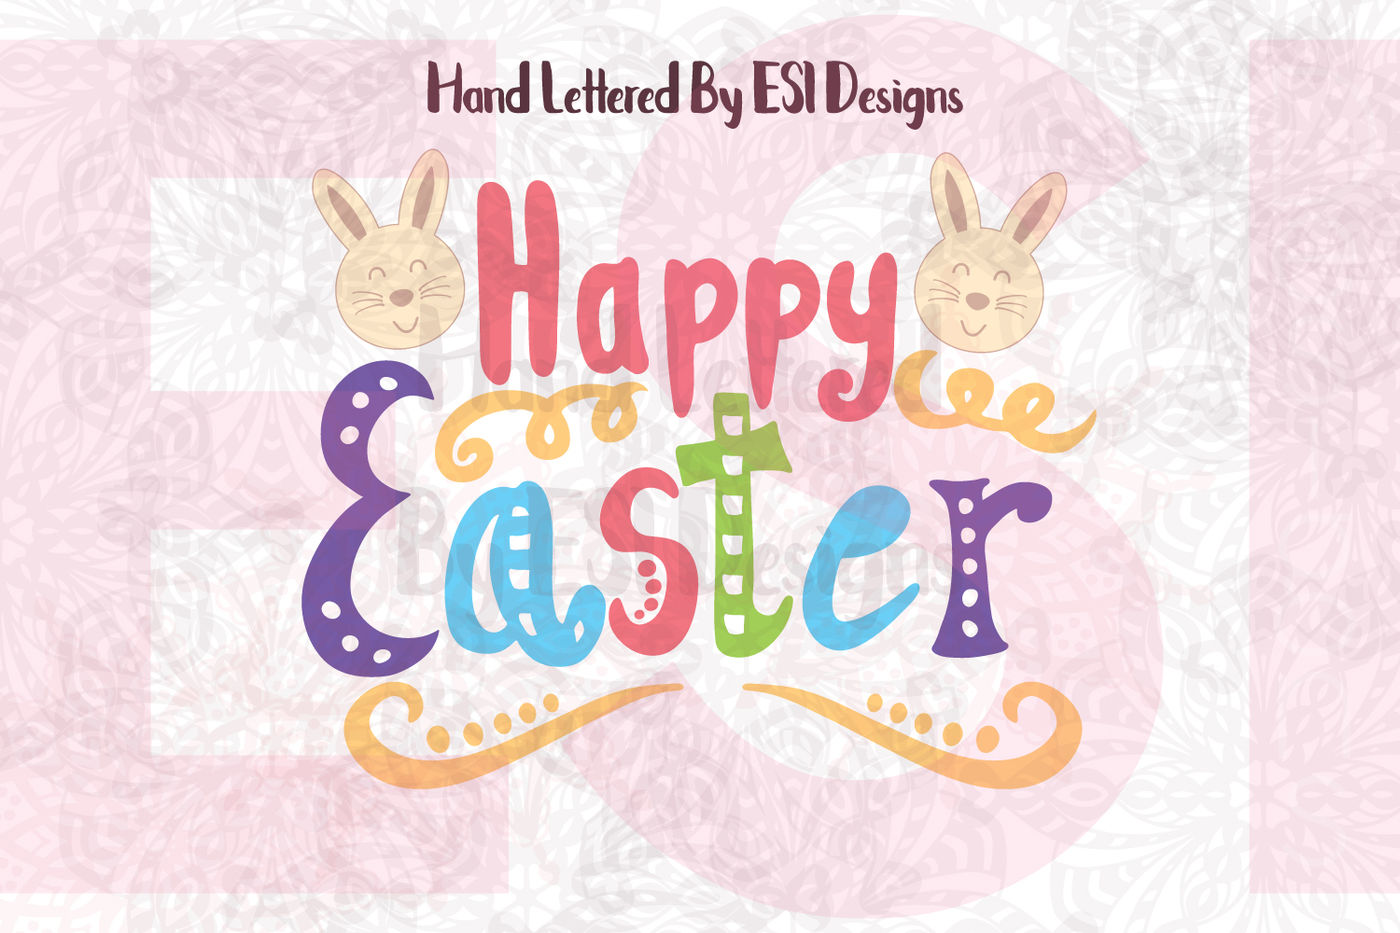 Hand Lettered Happy Easter Design With Bunny Heads Svg Dxf